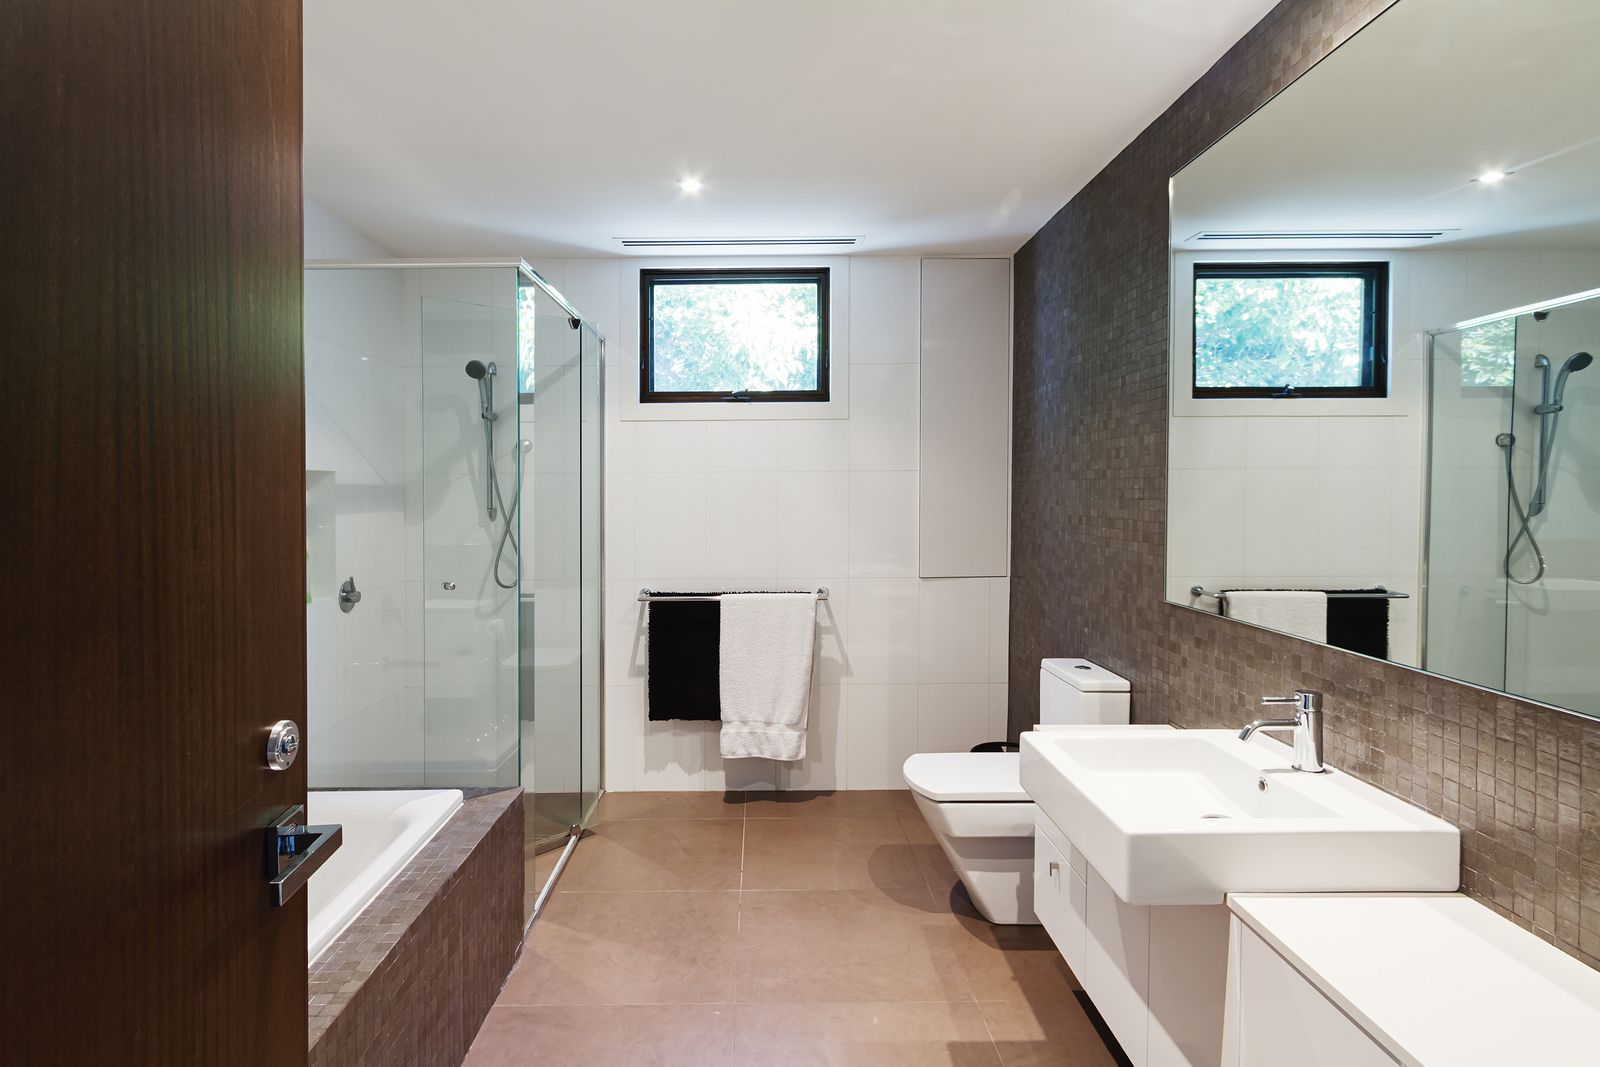 A Bathroom Renovation Can Increase The Value Of A Home Says Oxford - Bathroom renovation finance